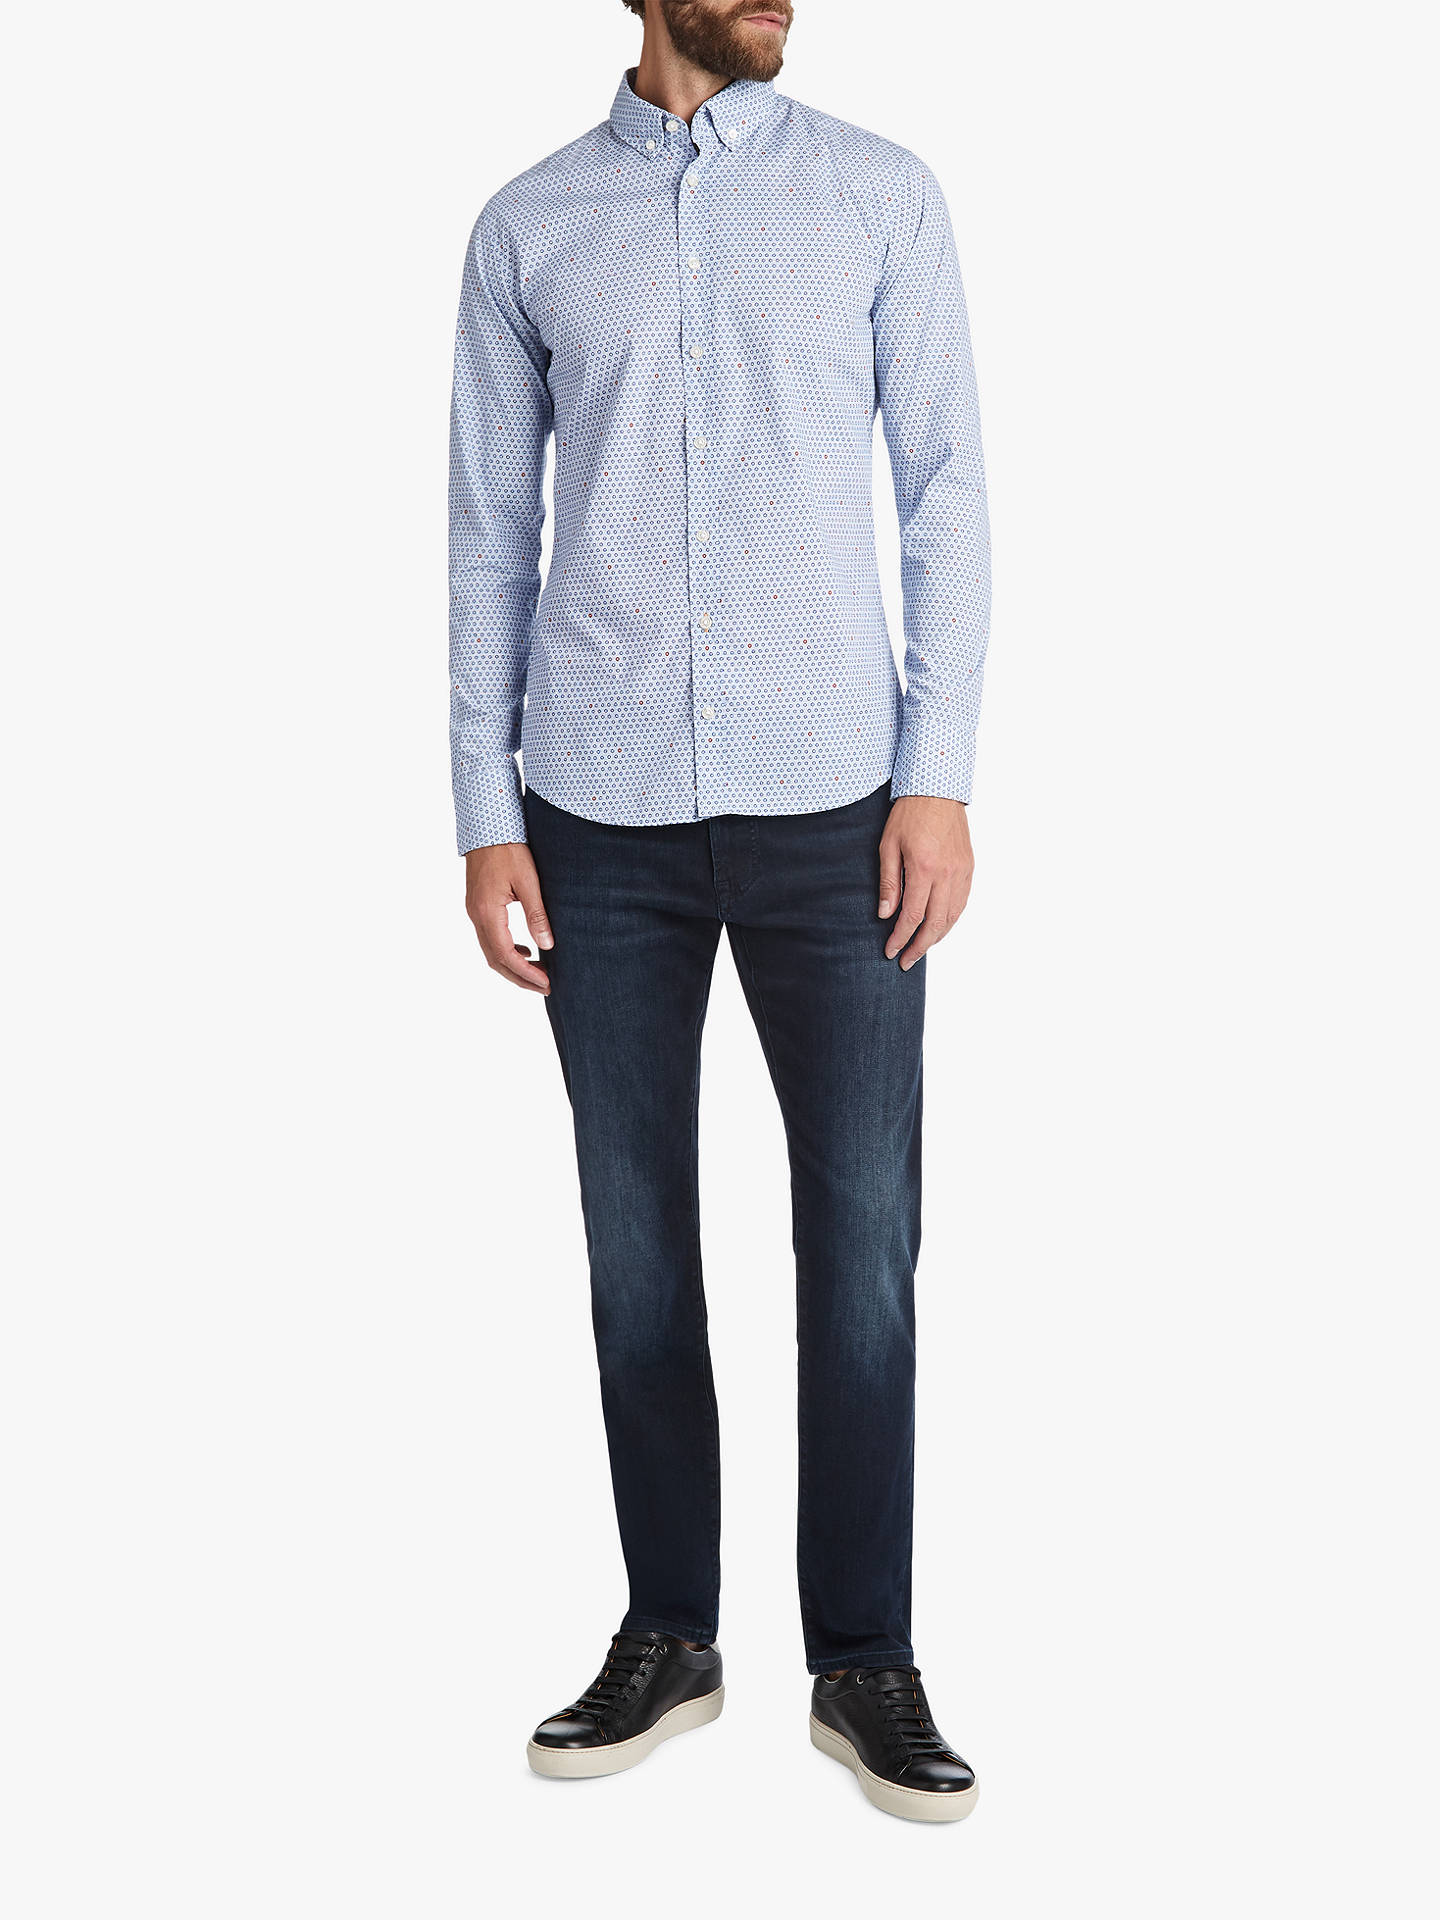 Buy BOSS Mabsoot Long Sleeve Pattern Shirt, Dark Blue, M Online at johnlewis.com